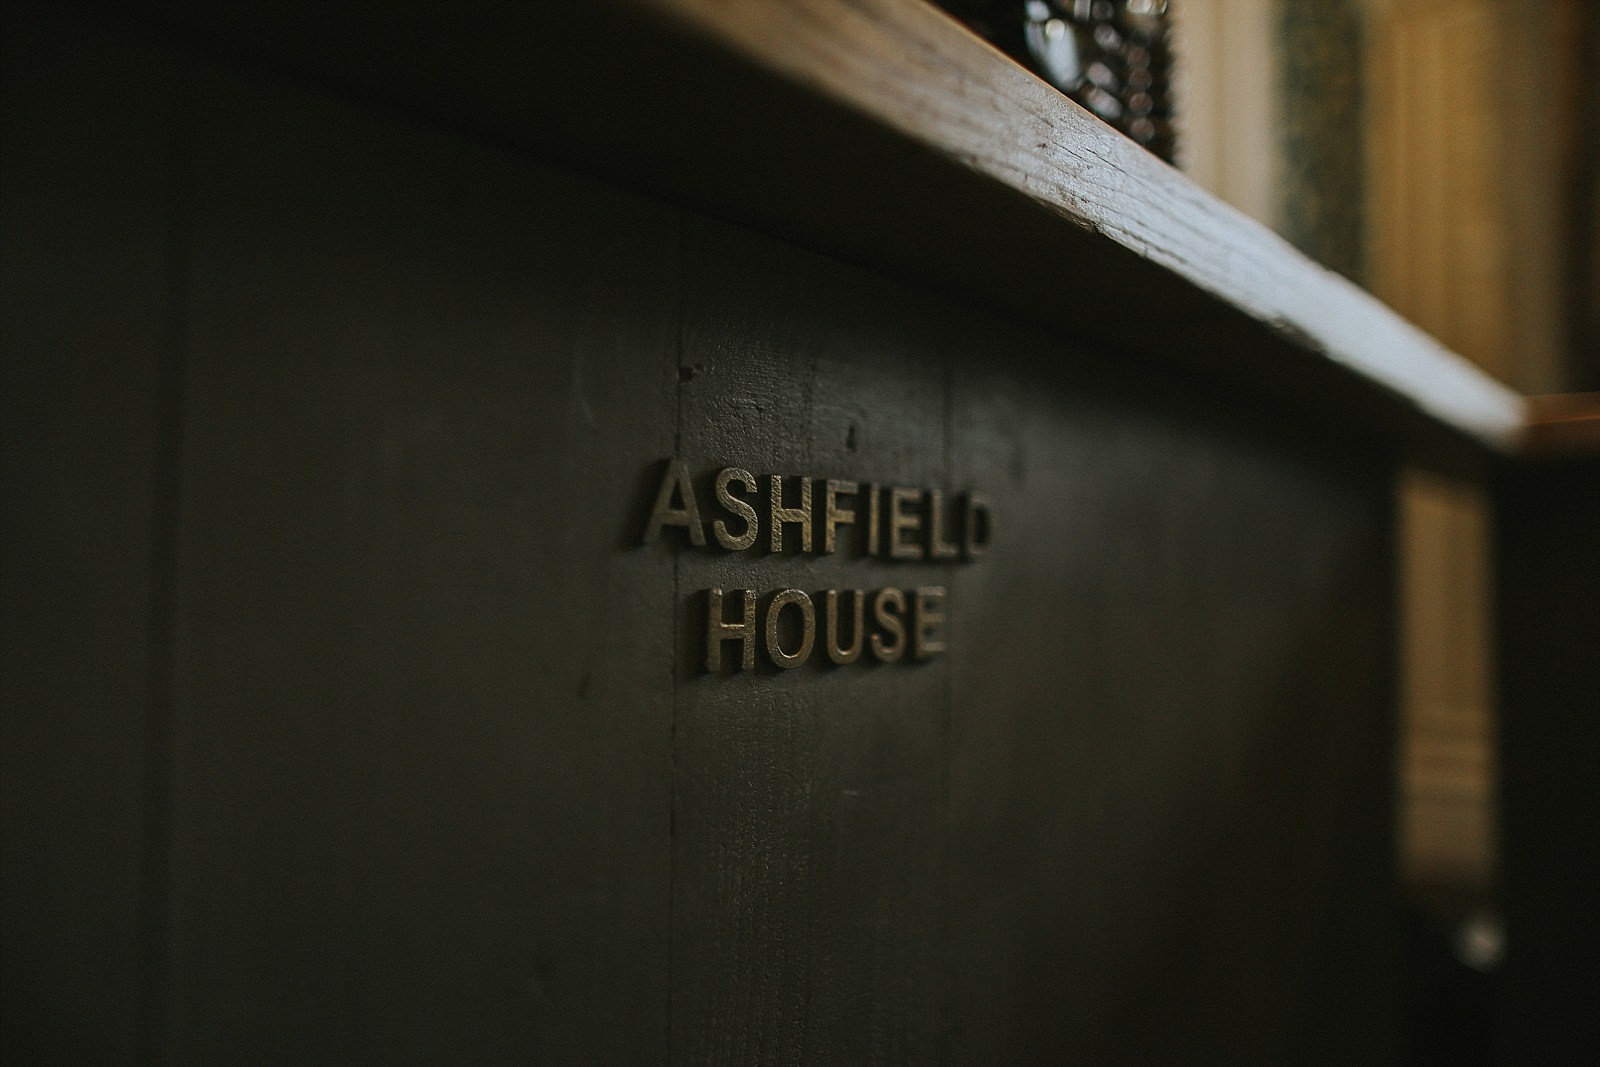 ashfield house in wigan logo on a table